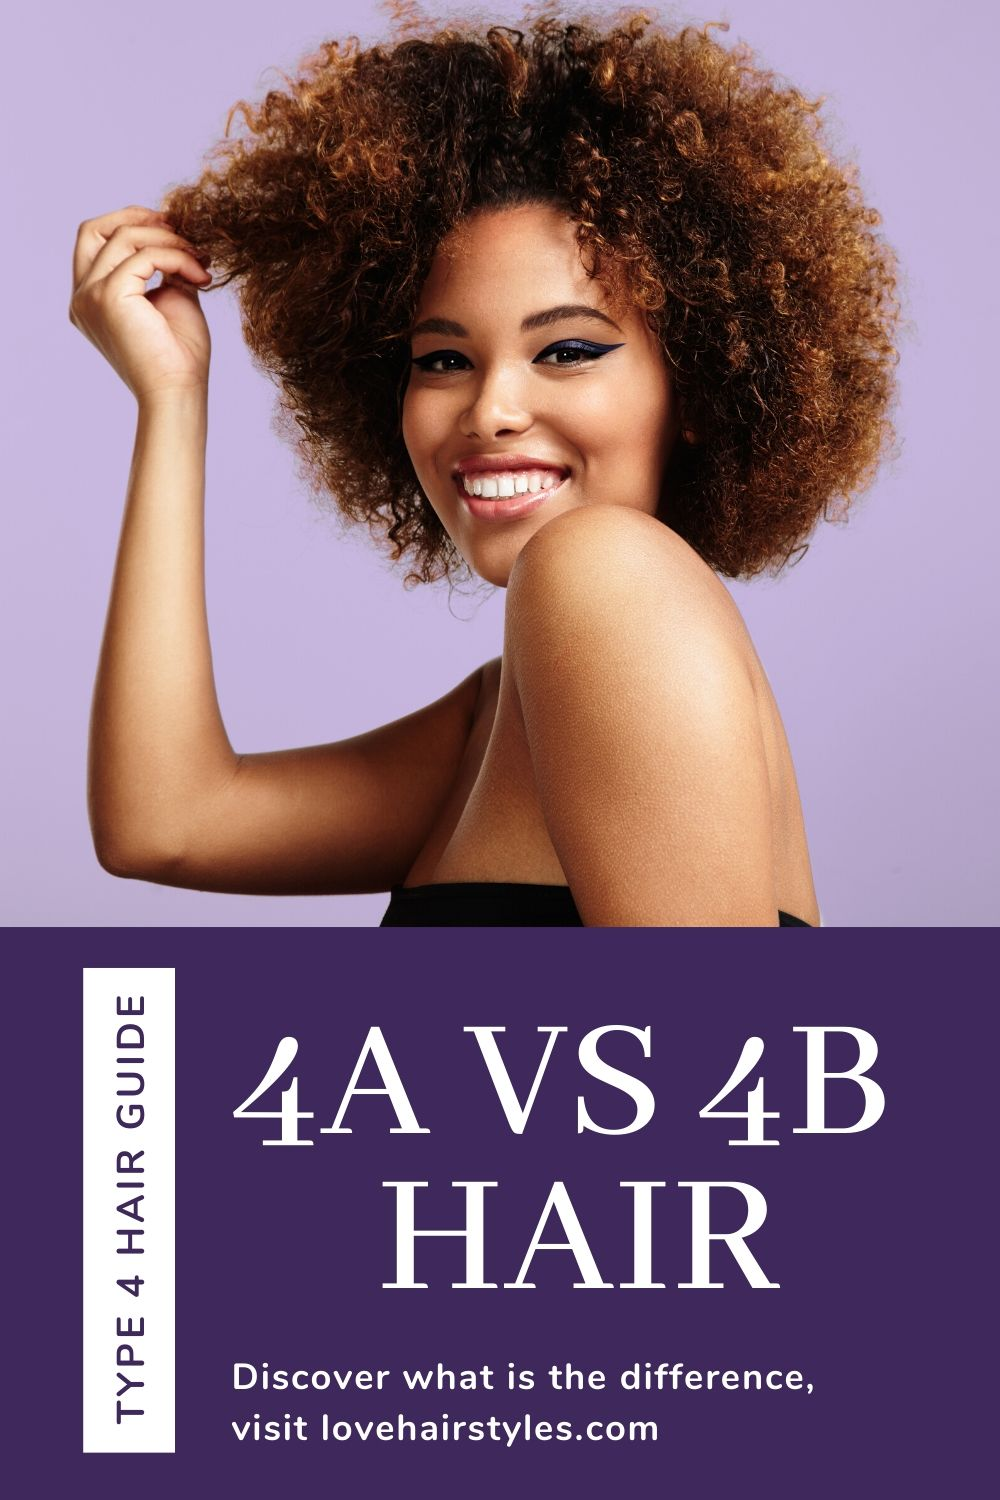 What is the difference between 4a and 4b hair?